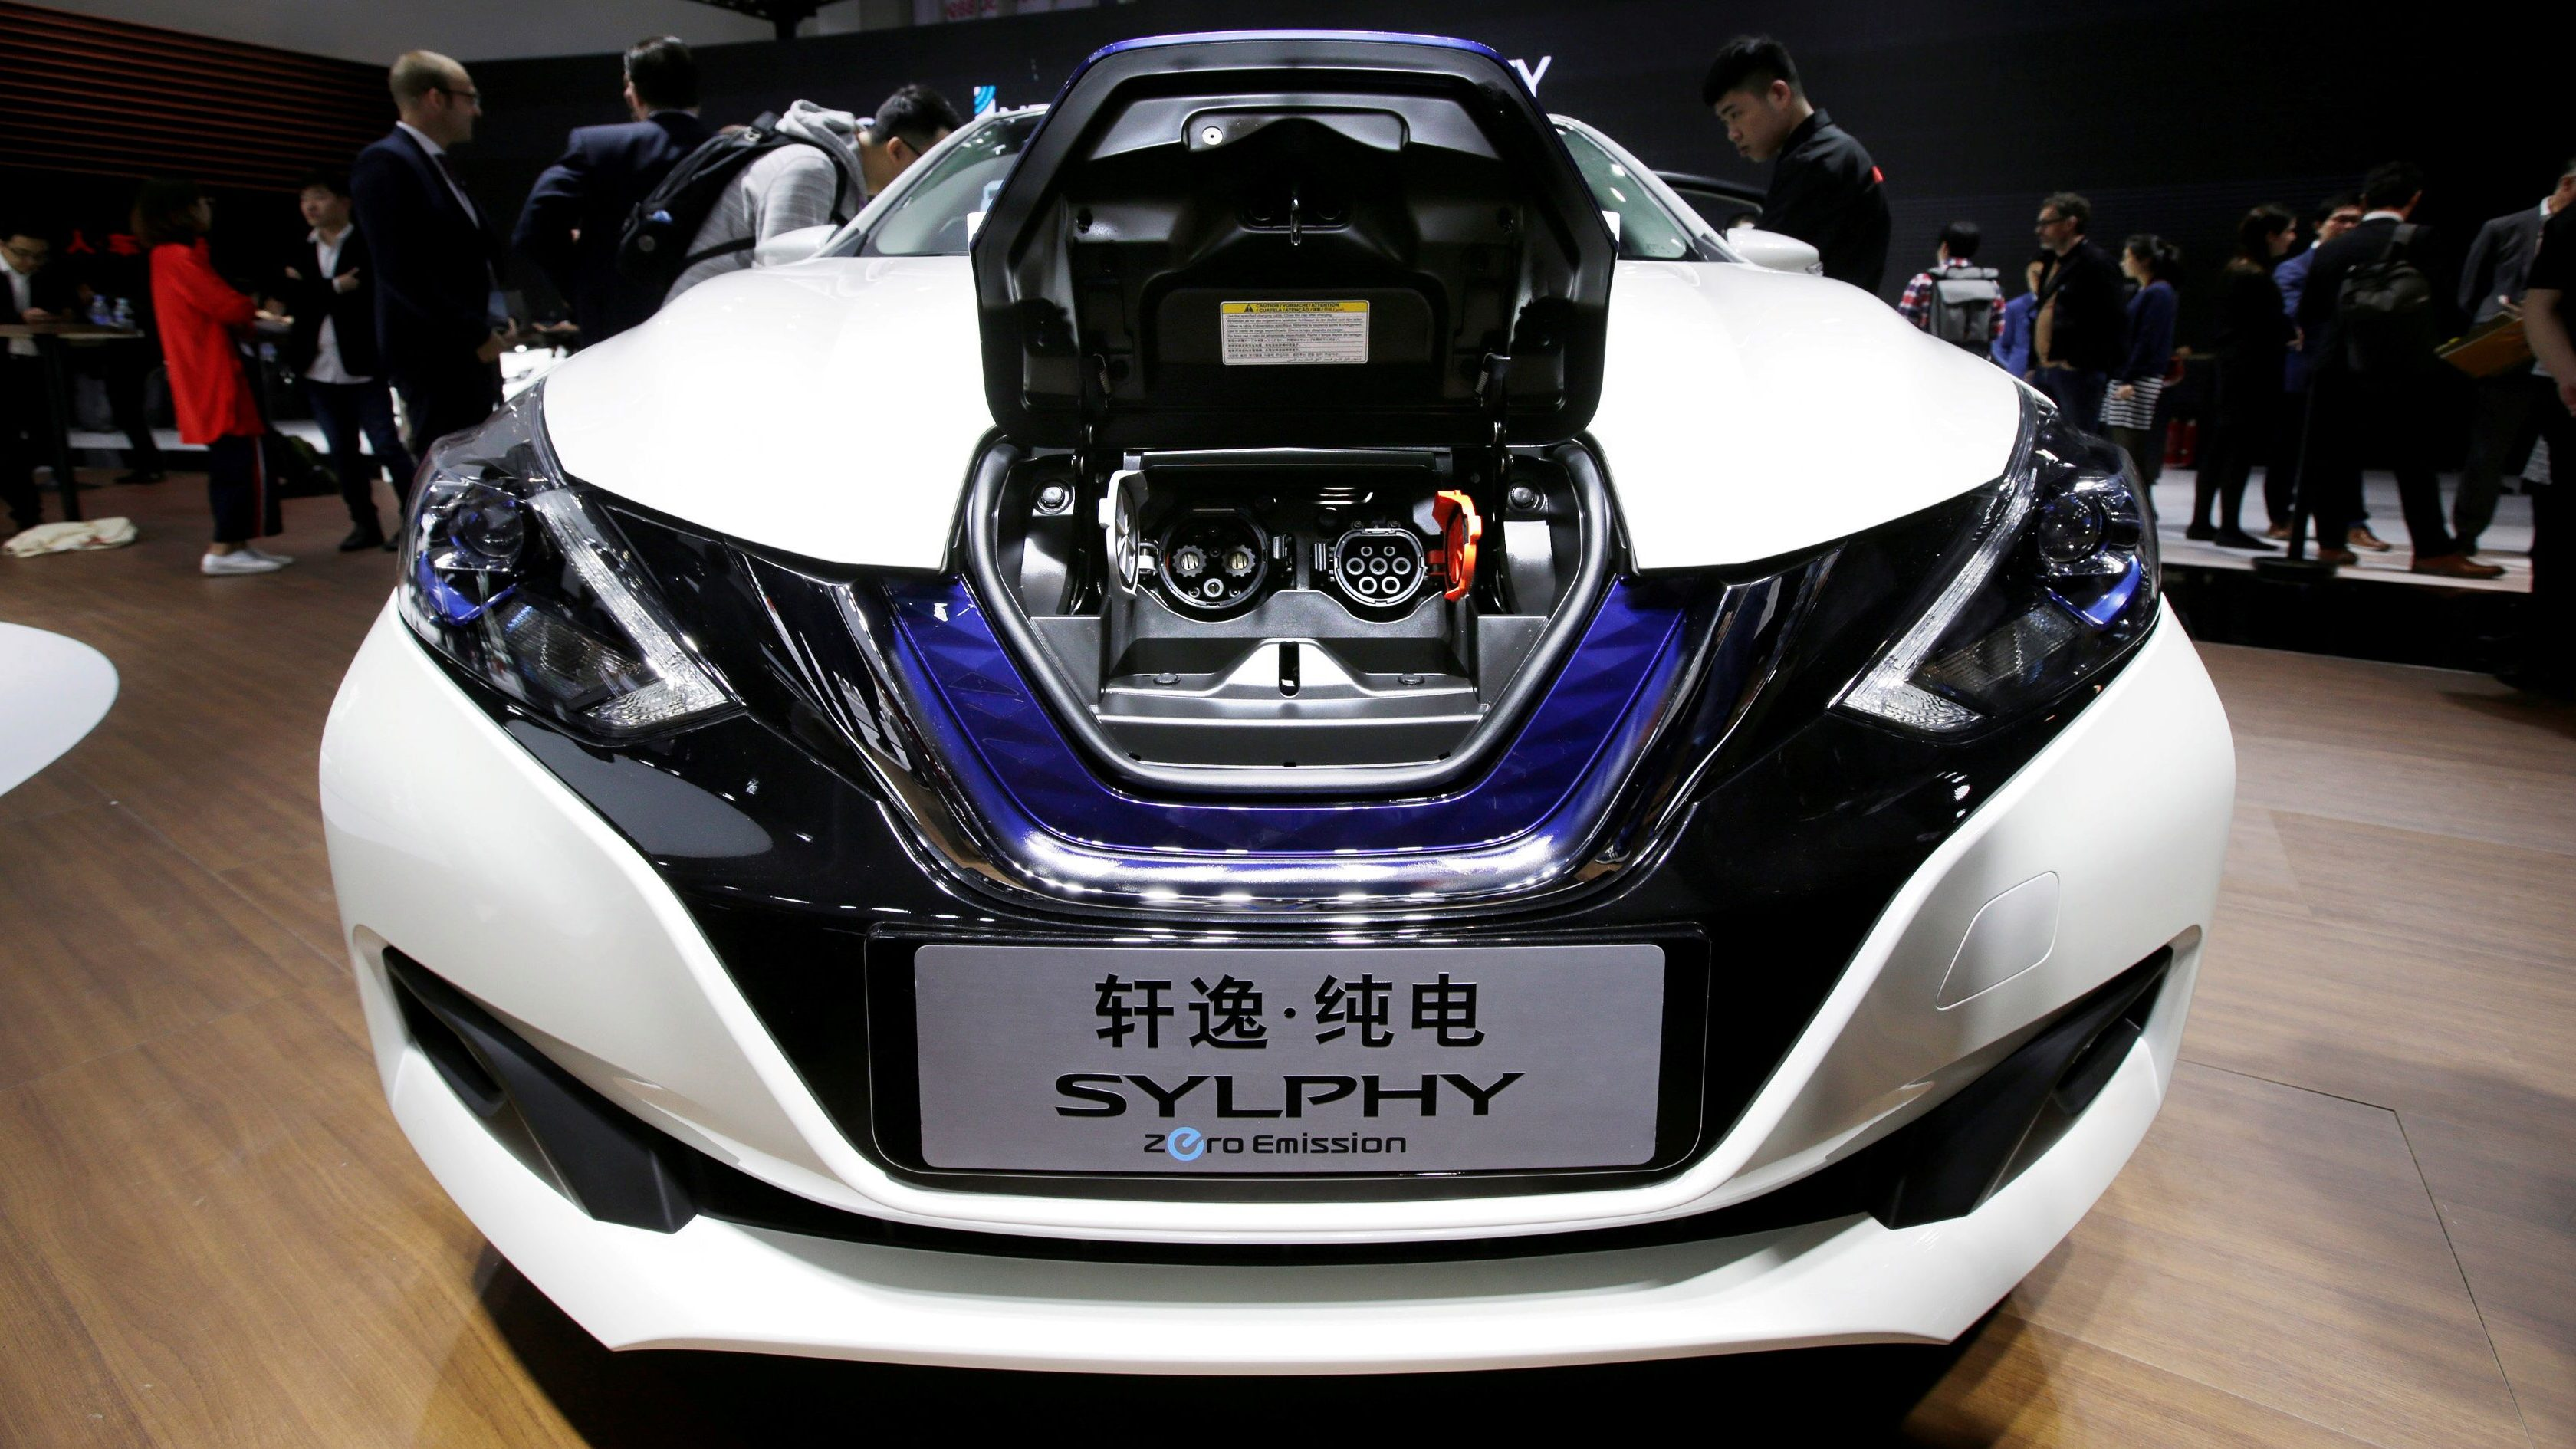 FILE PHOTO: A Nissan SYLPHY electric car is displayed during a media preview of the Auto China 2018 motor show in Beijing